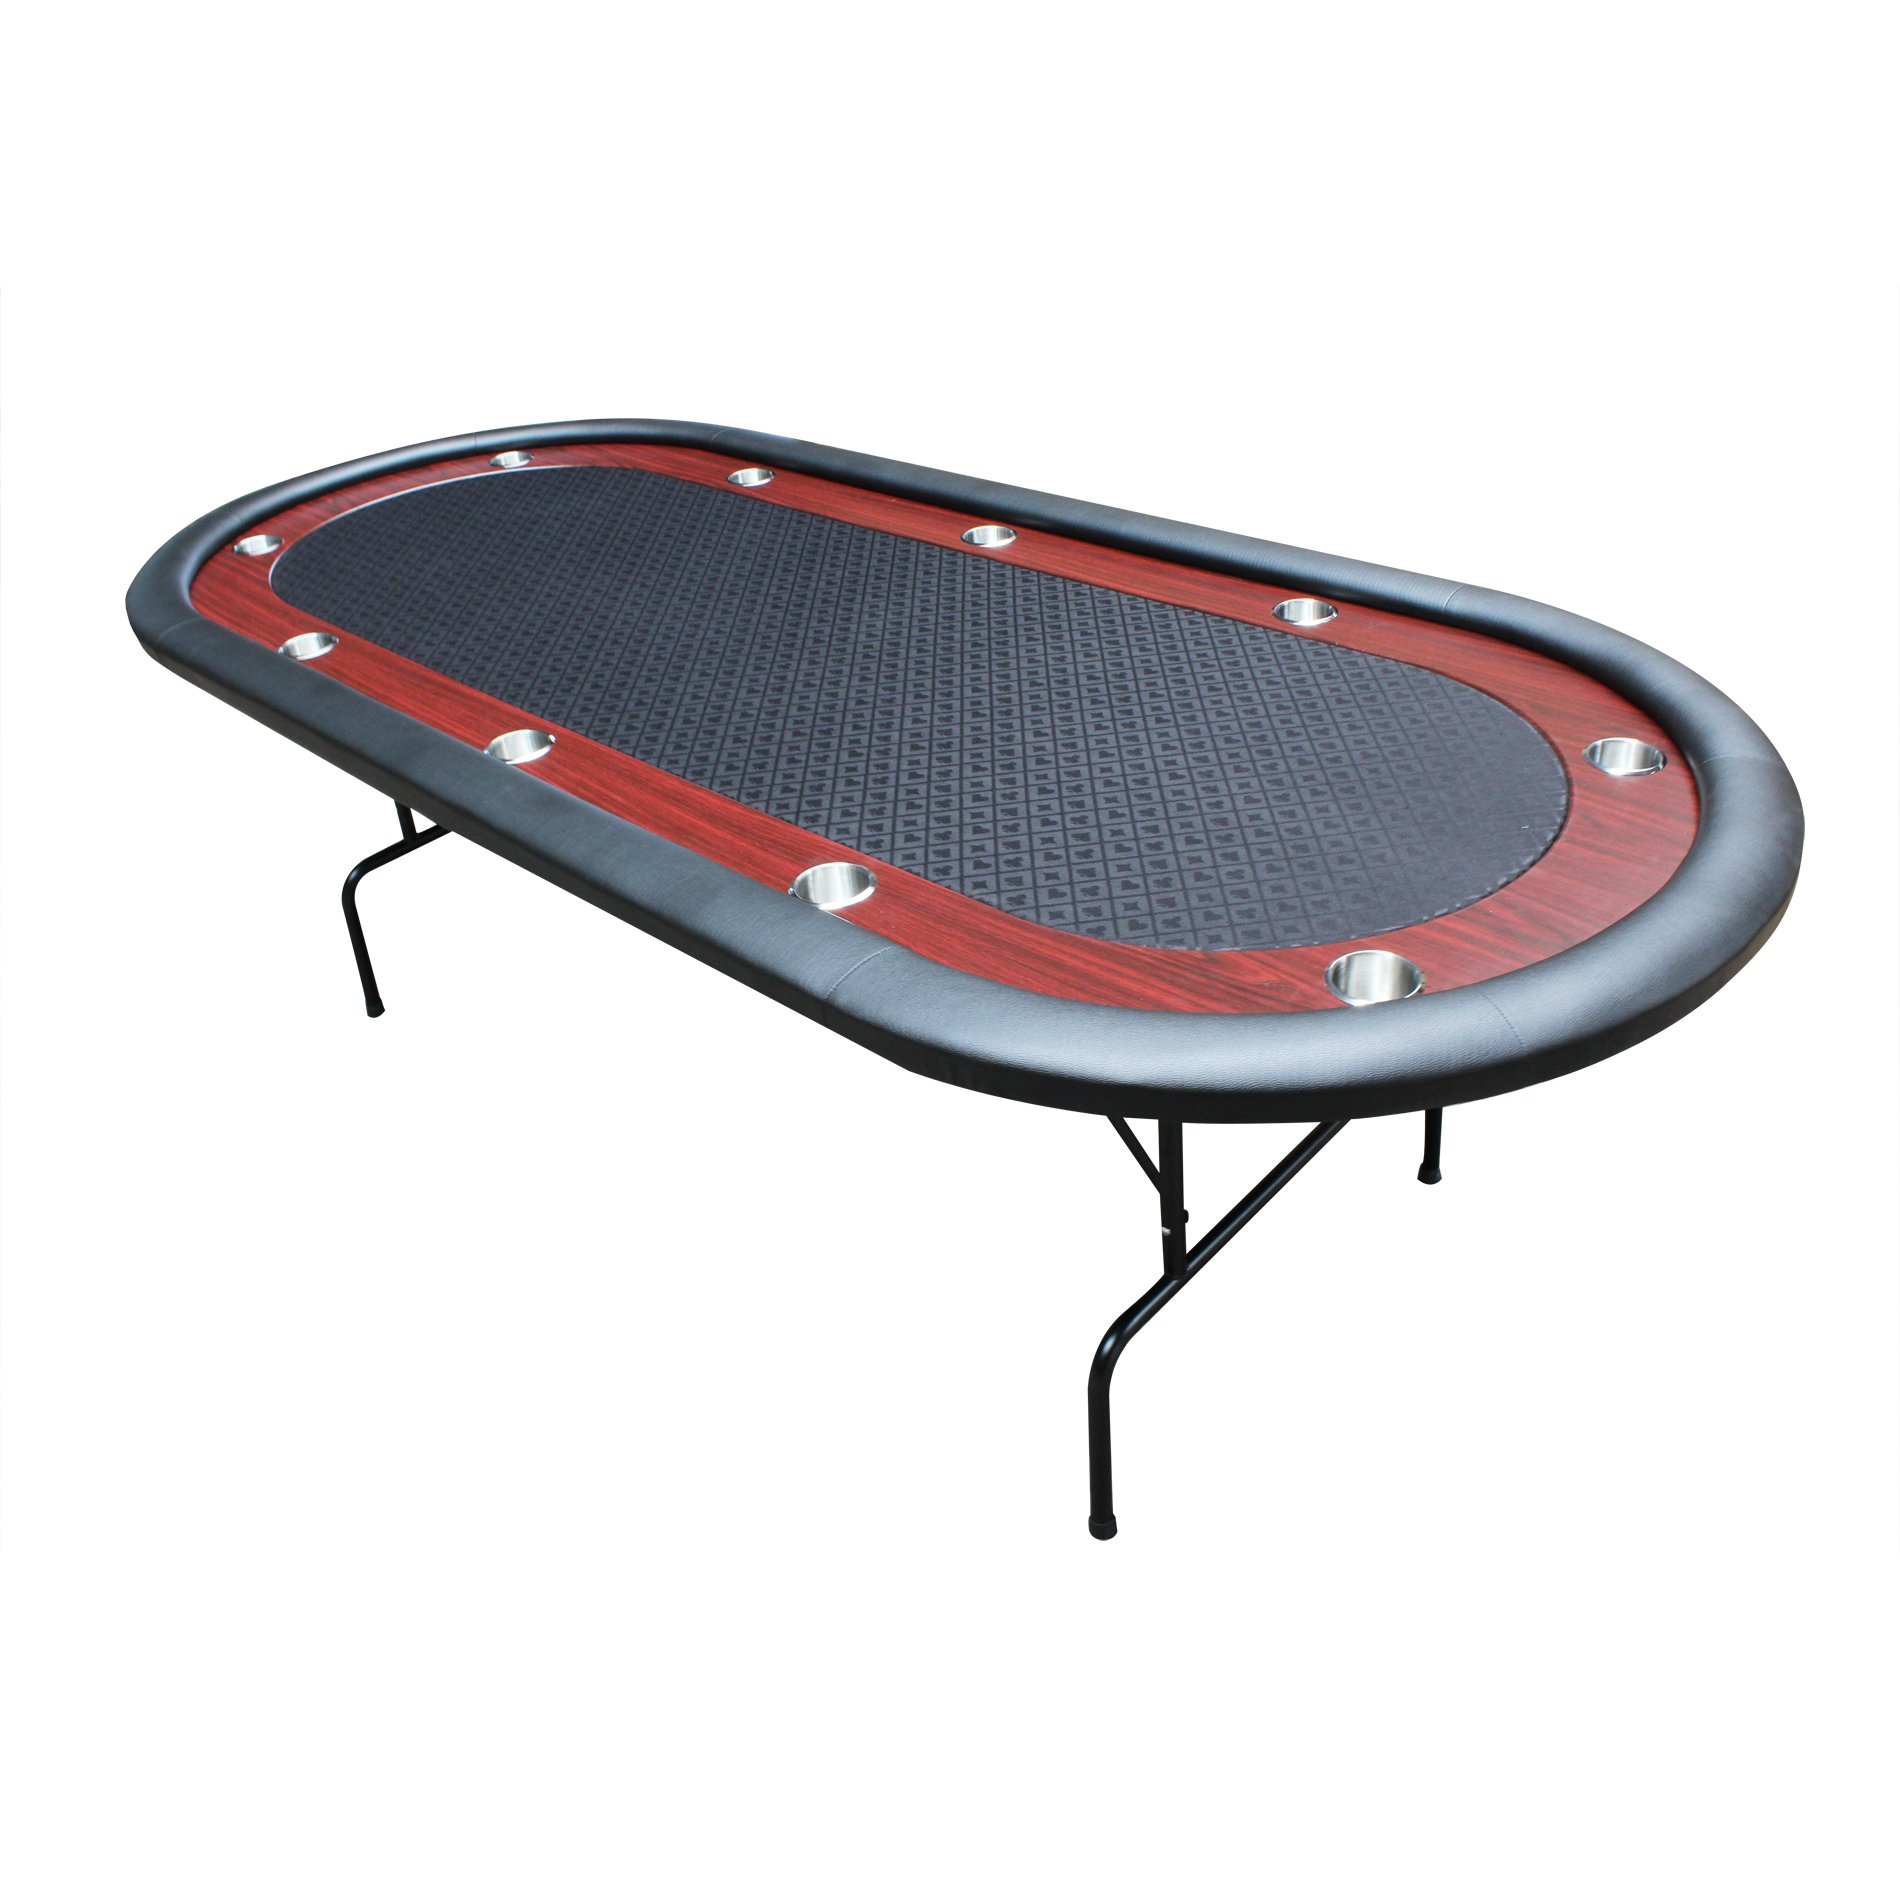 """IDS Texas Hold'em Poker Table 10 Players With Wooden Racetrack Cup Holders Foldable Legs- 96"""" x 43"""" x 30"""" Inch Oval - Black"""